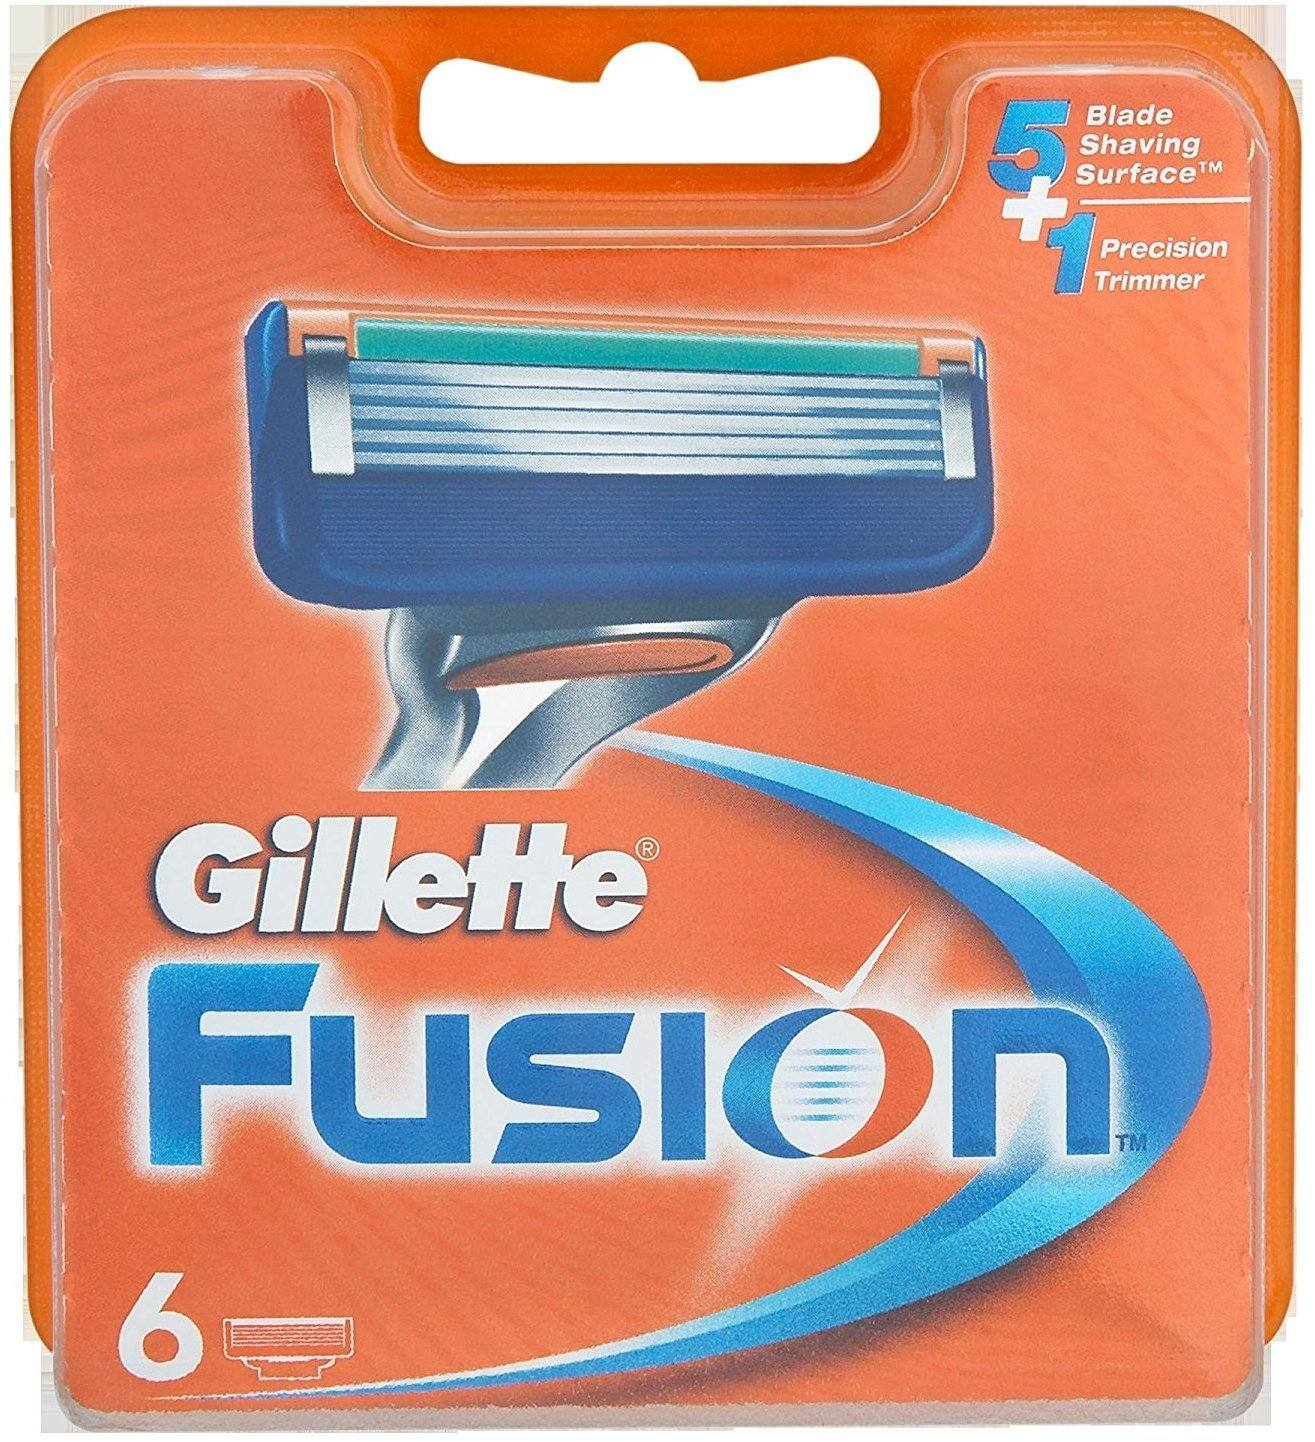 Gillette 75035001 Fusion Manual Pack of 6 Razor Blades